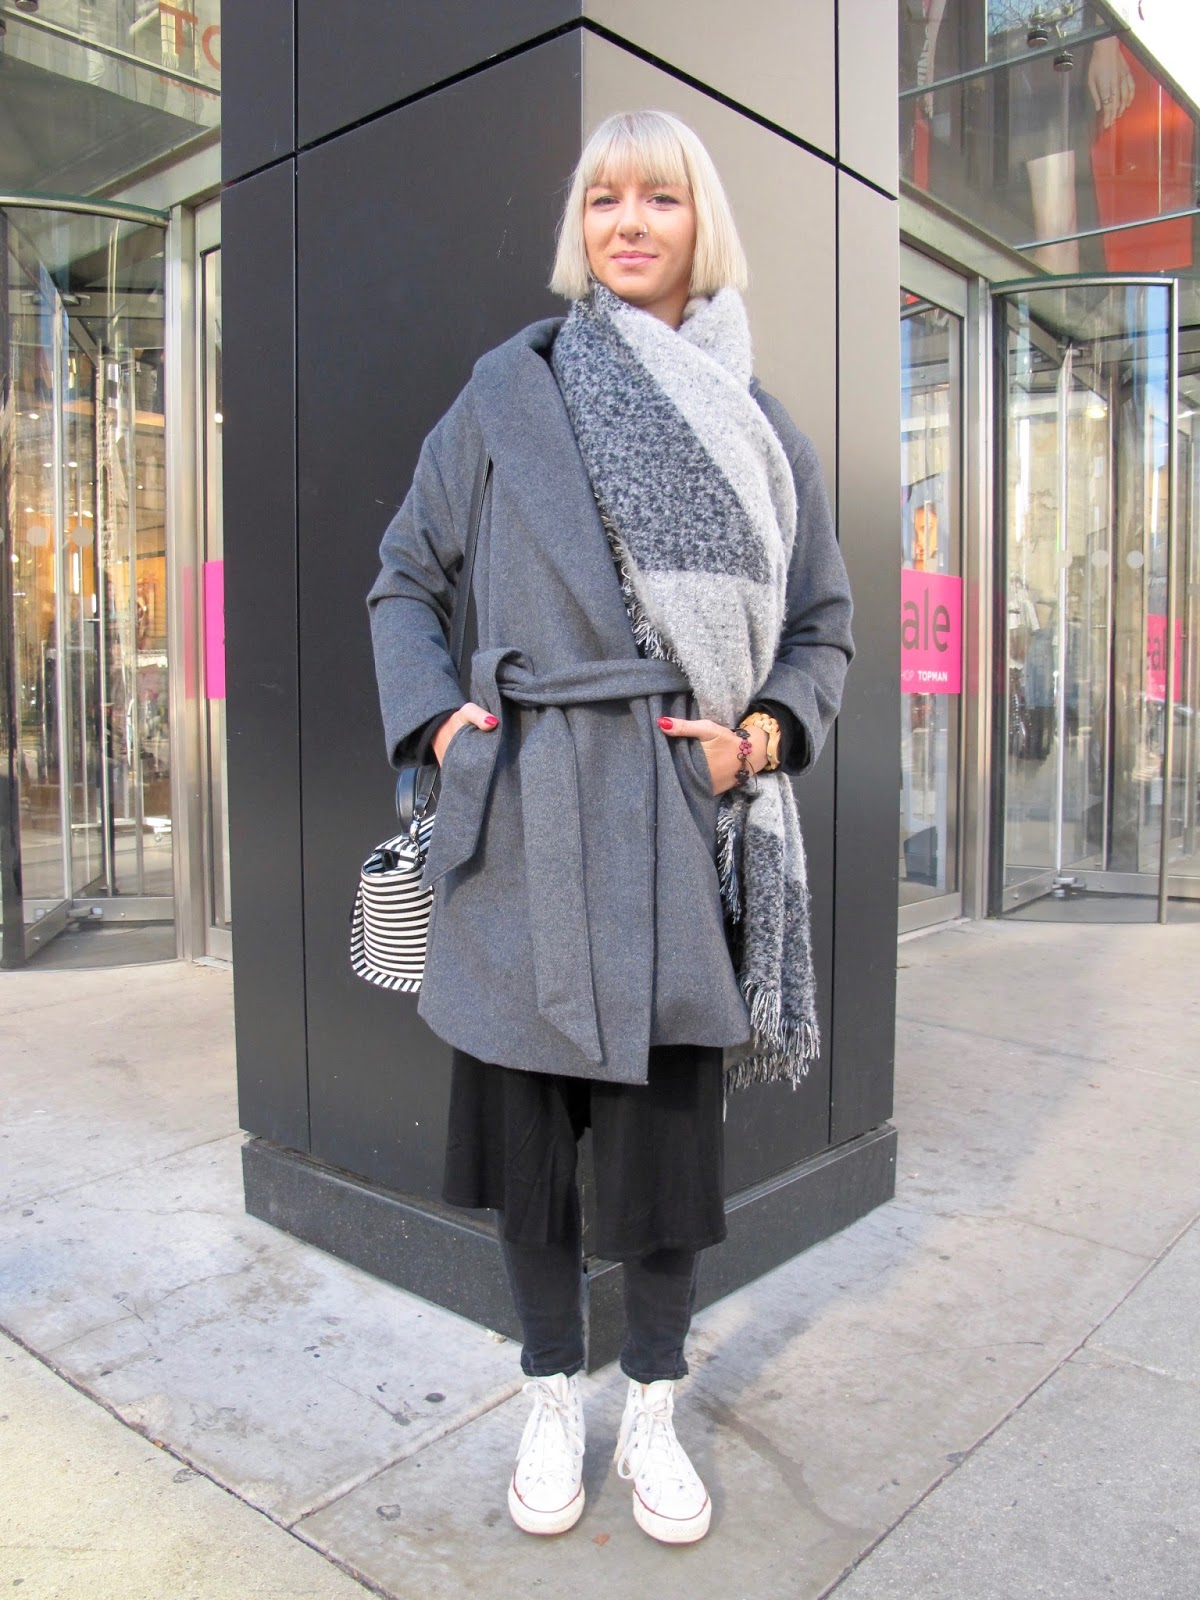 Monika Chicago Looks A Chicago Street Style Fashion Blog